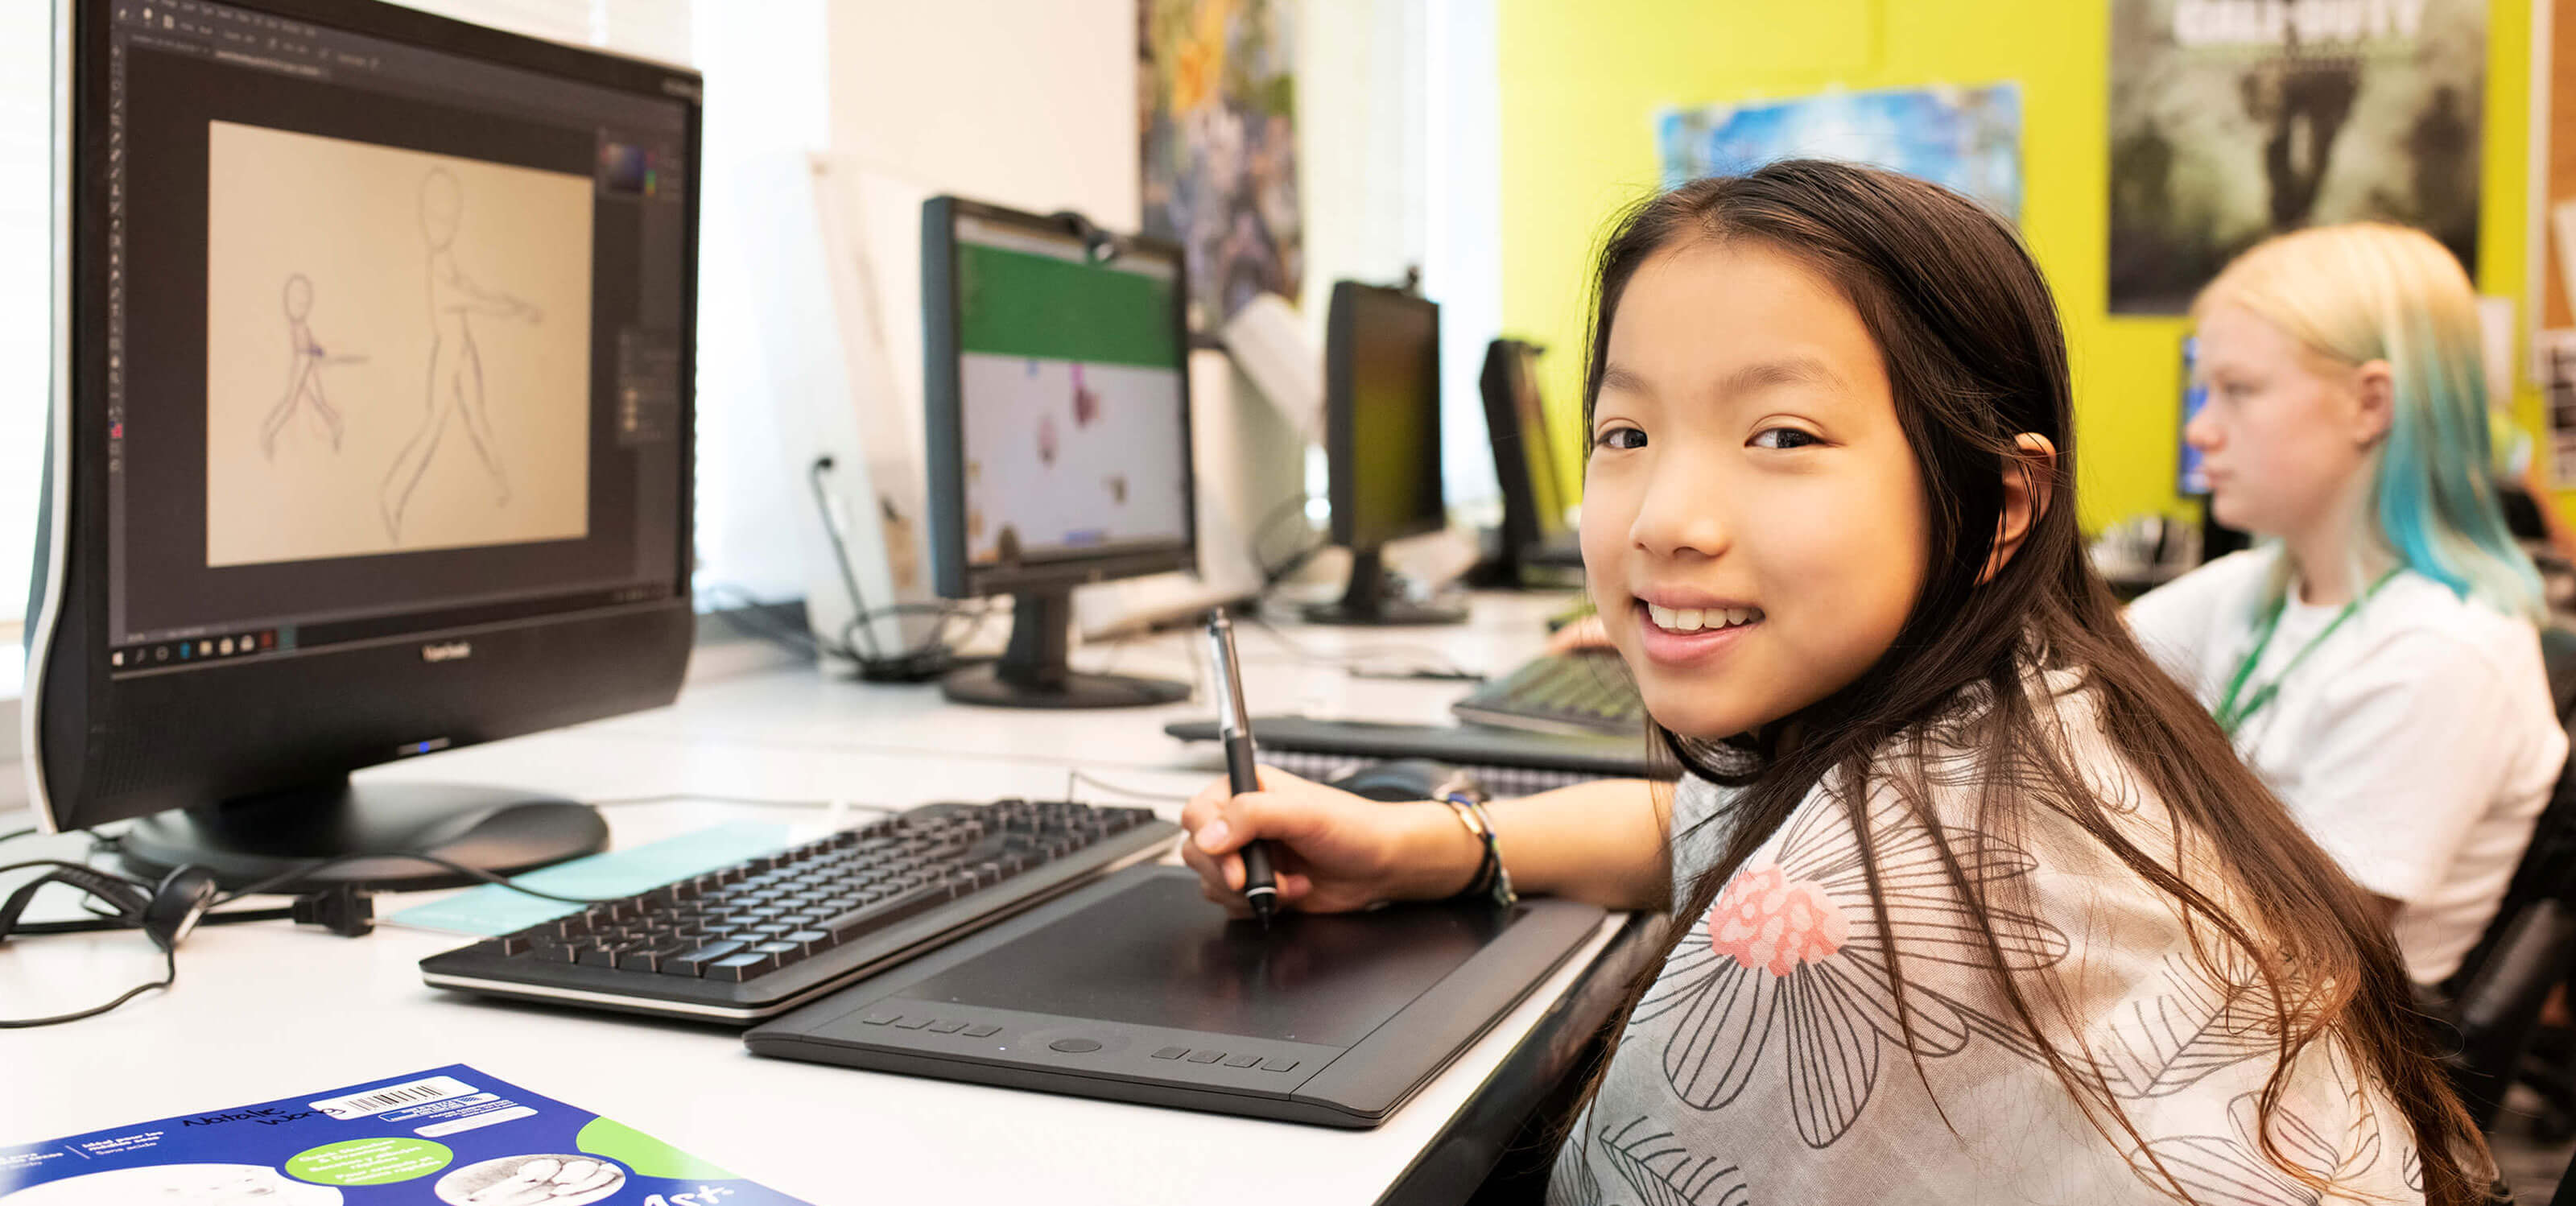 A young ProjectFUN student smiling as she sits at a computer in a classroom at the DigiPen campus